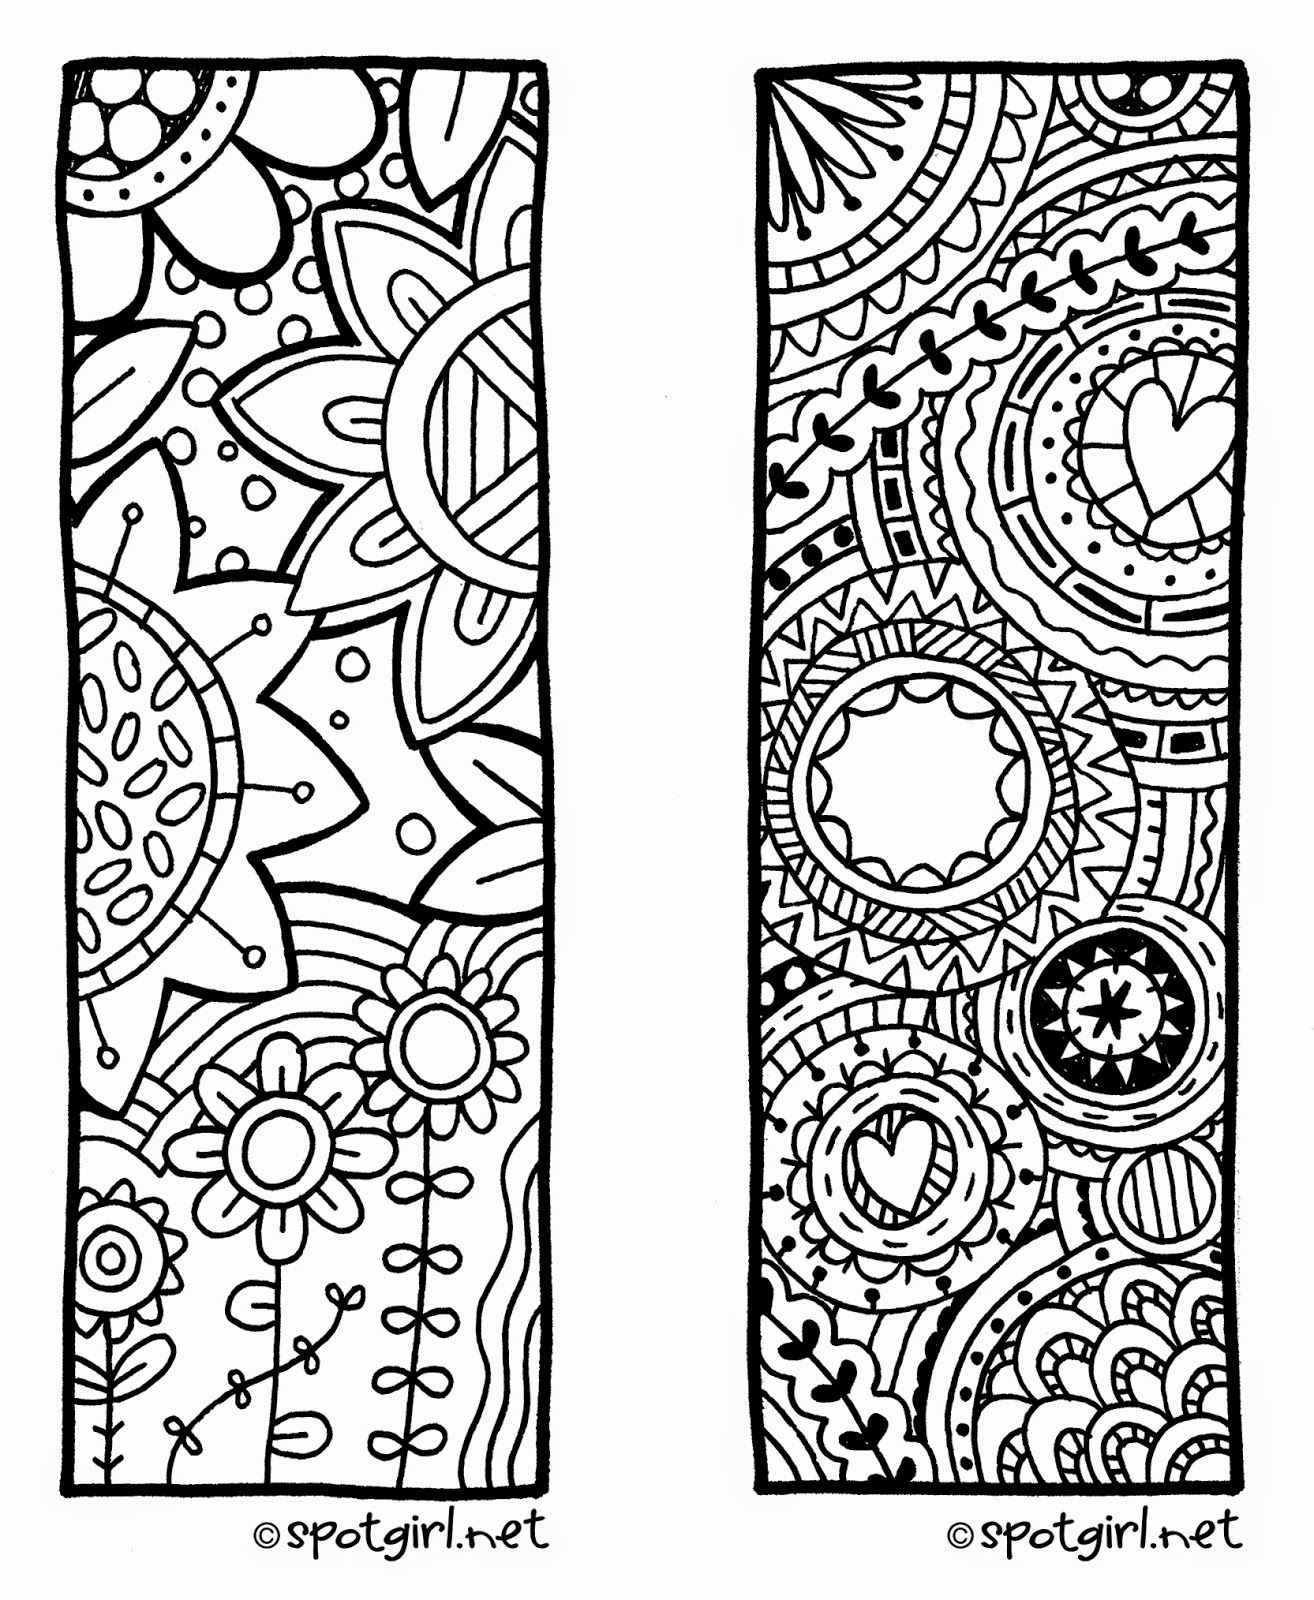 Zentangle Bookmark Printable From Spotgirl Hotcakesspot